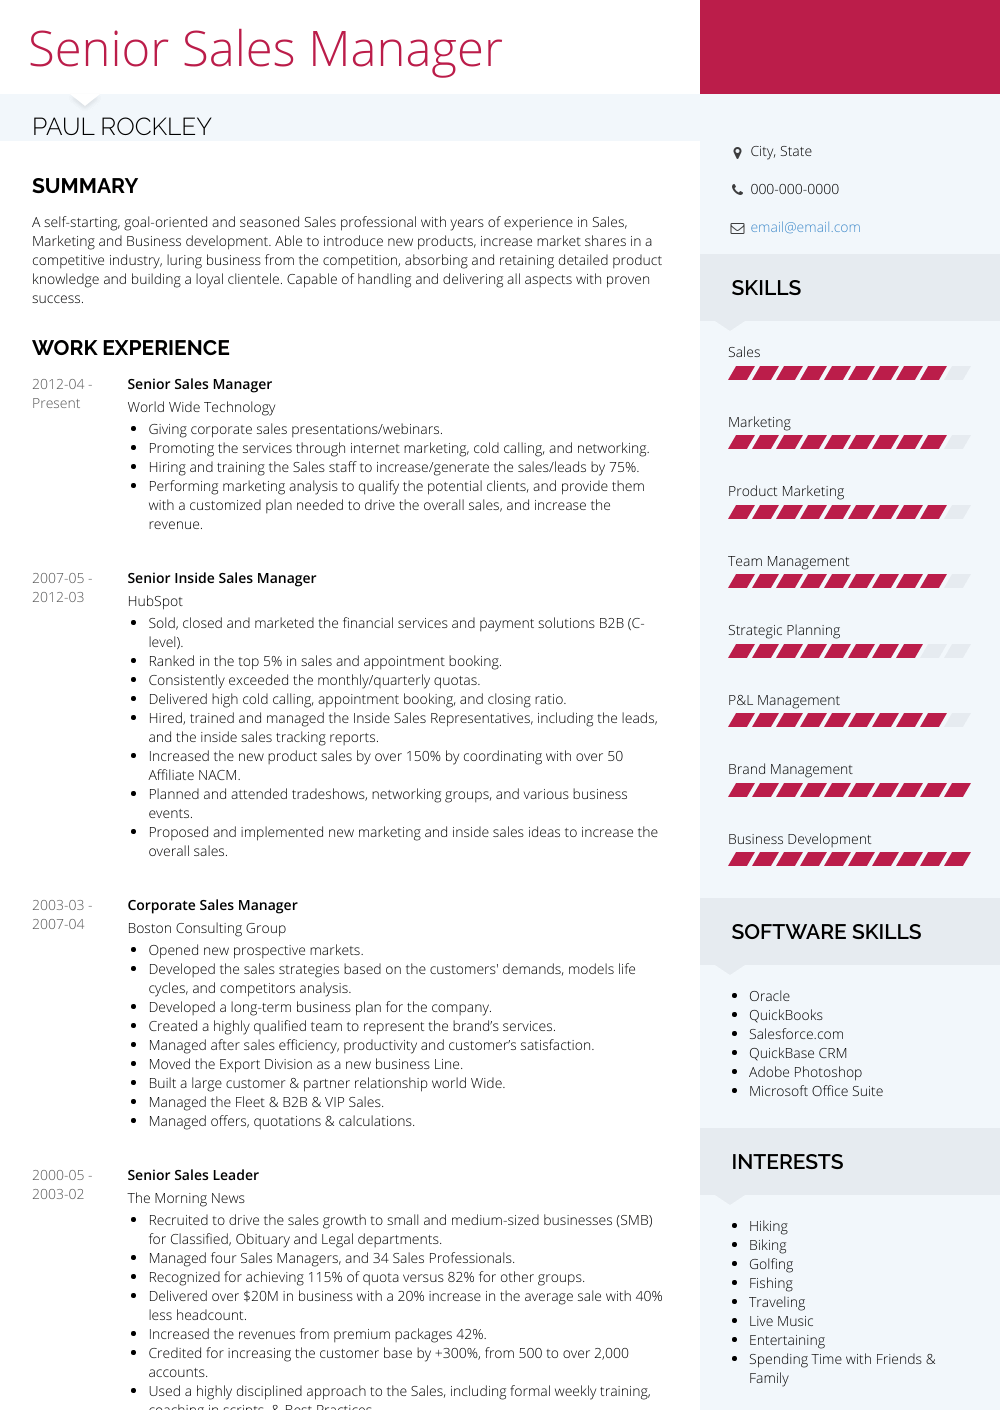 sample senior sales cv